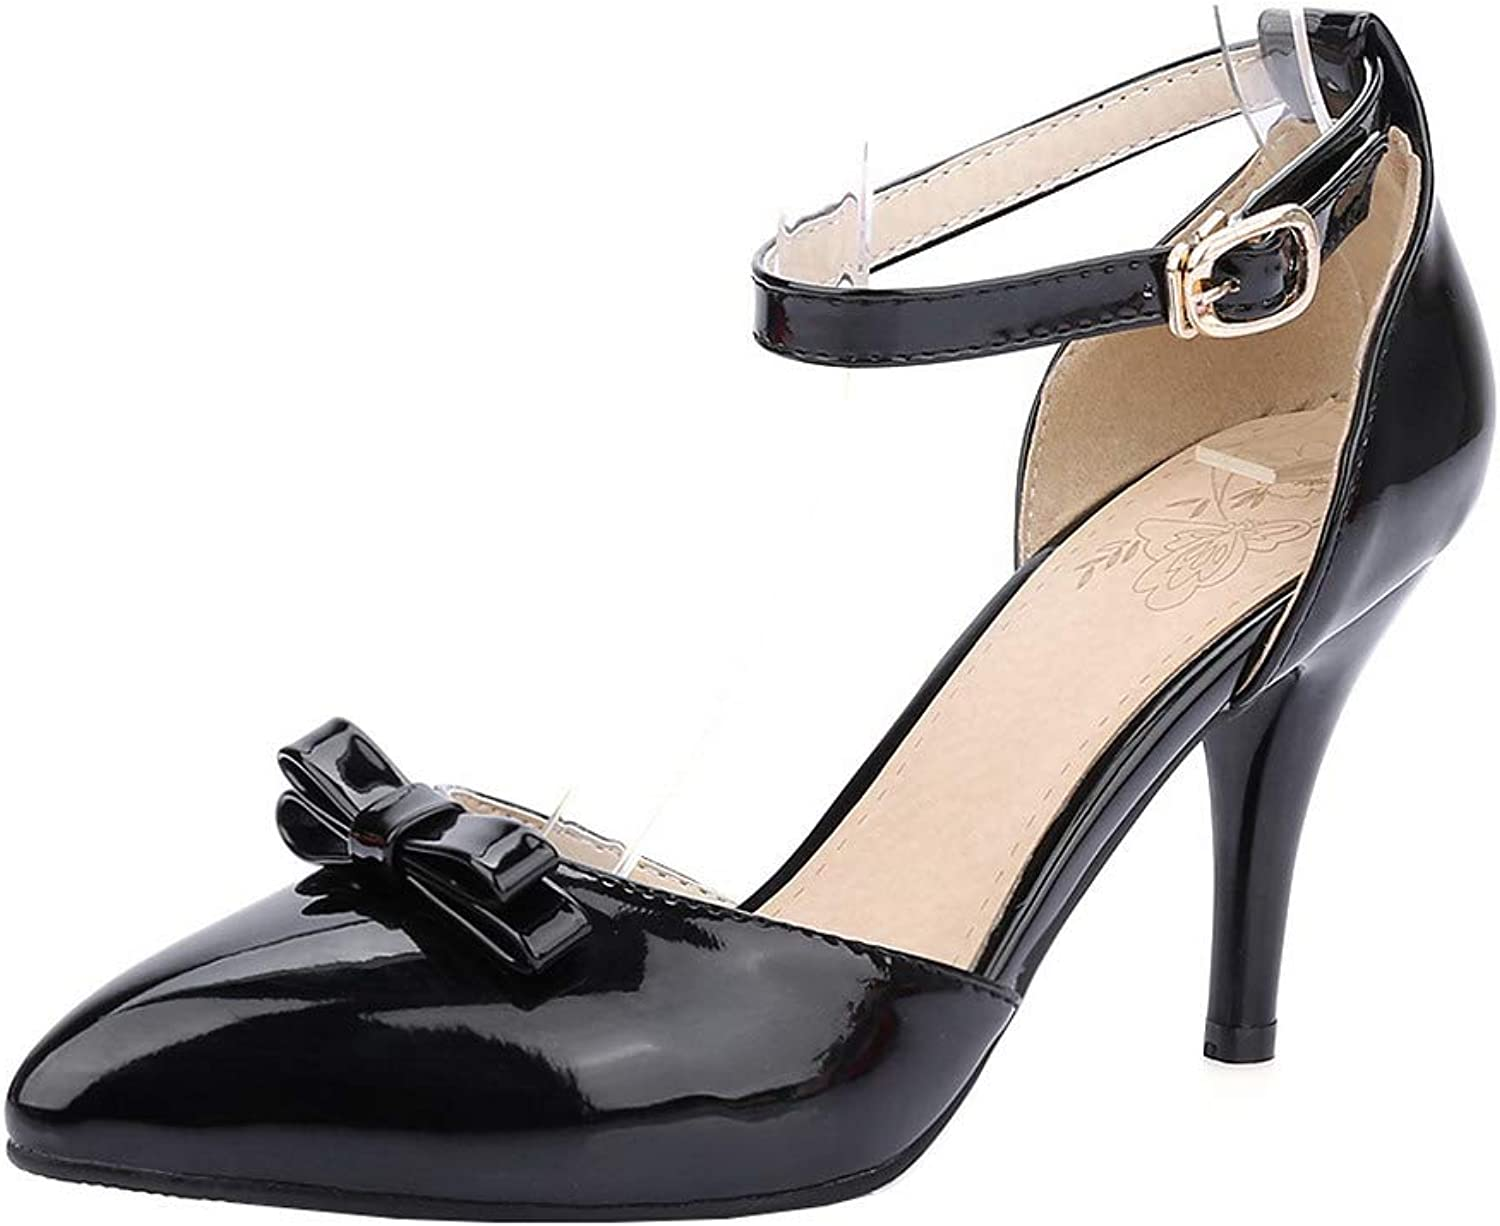 AllhqFashion Women's Solid Patent Leather Buckle Pointed Closed Toe Pumps-shoes,FBUDD012302